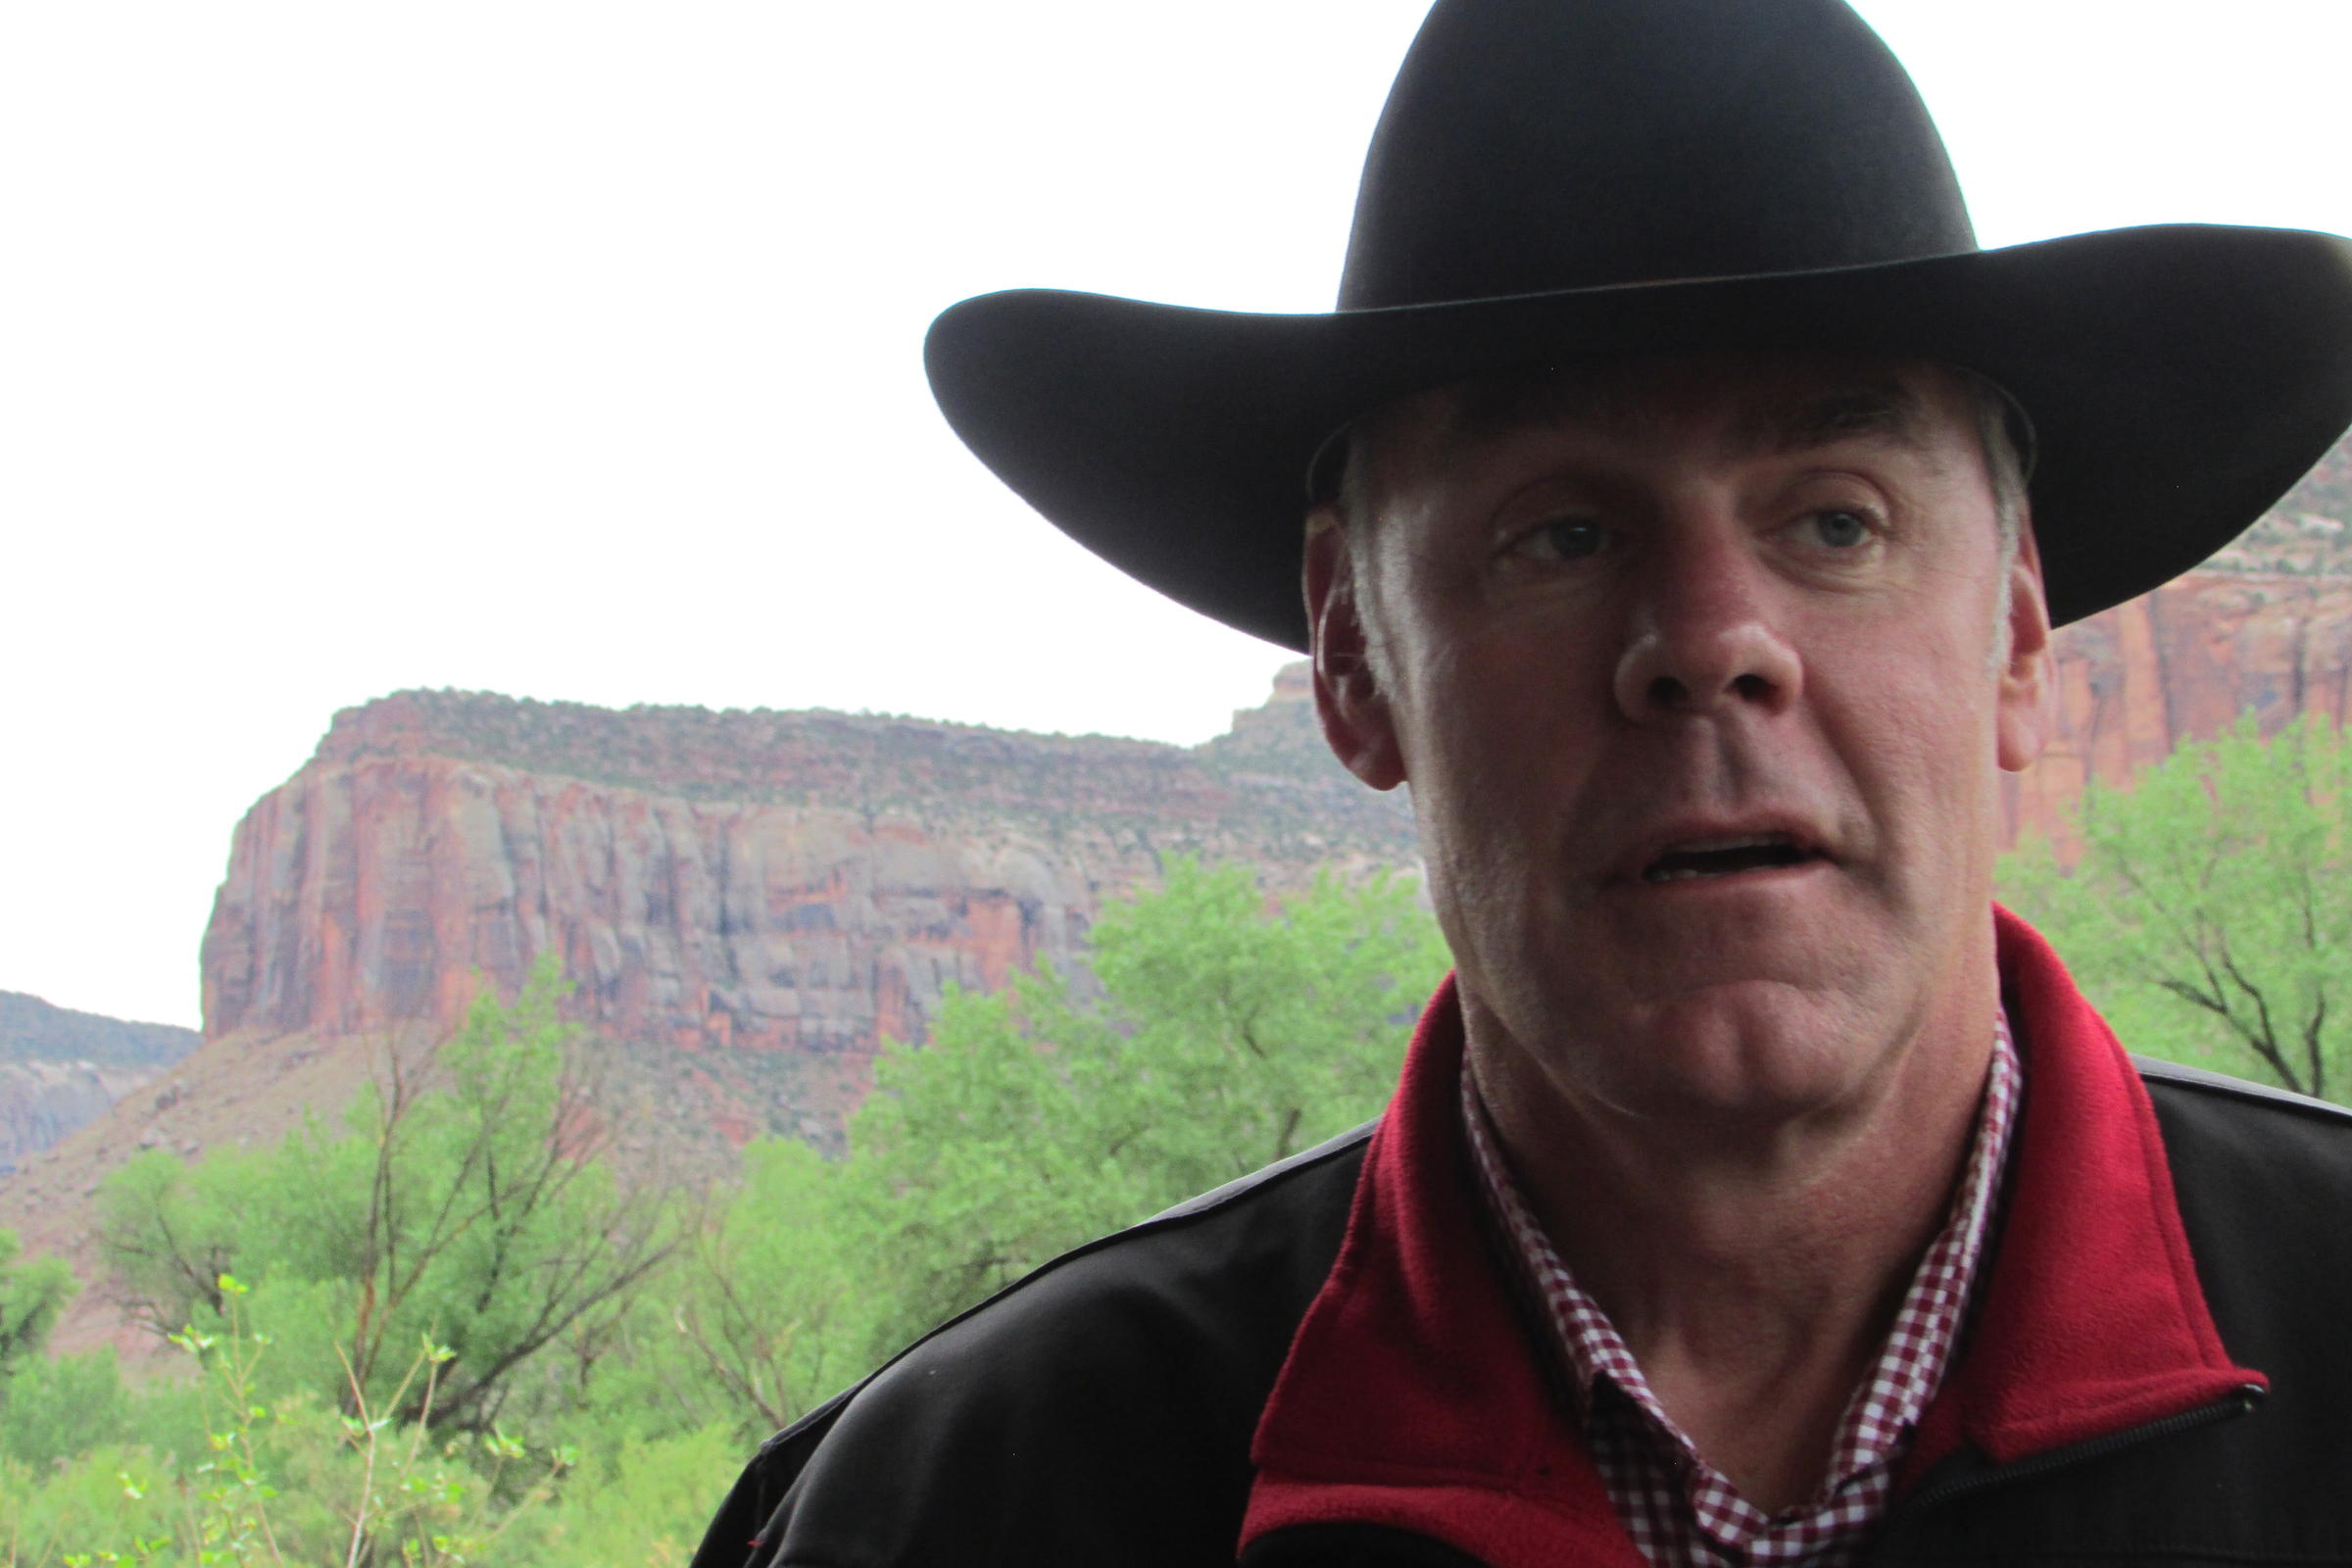 Interior Secretary Ryan Zinke visited Dugout Ranch Tuesday as part of his